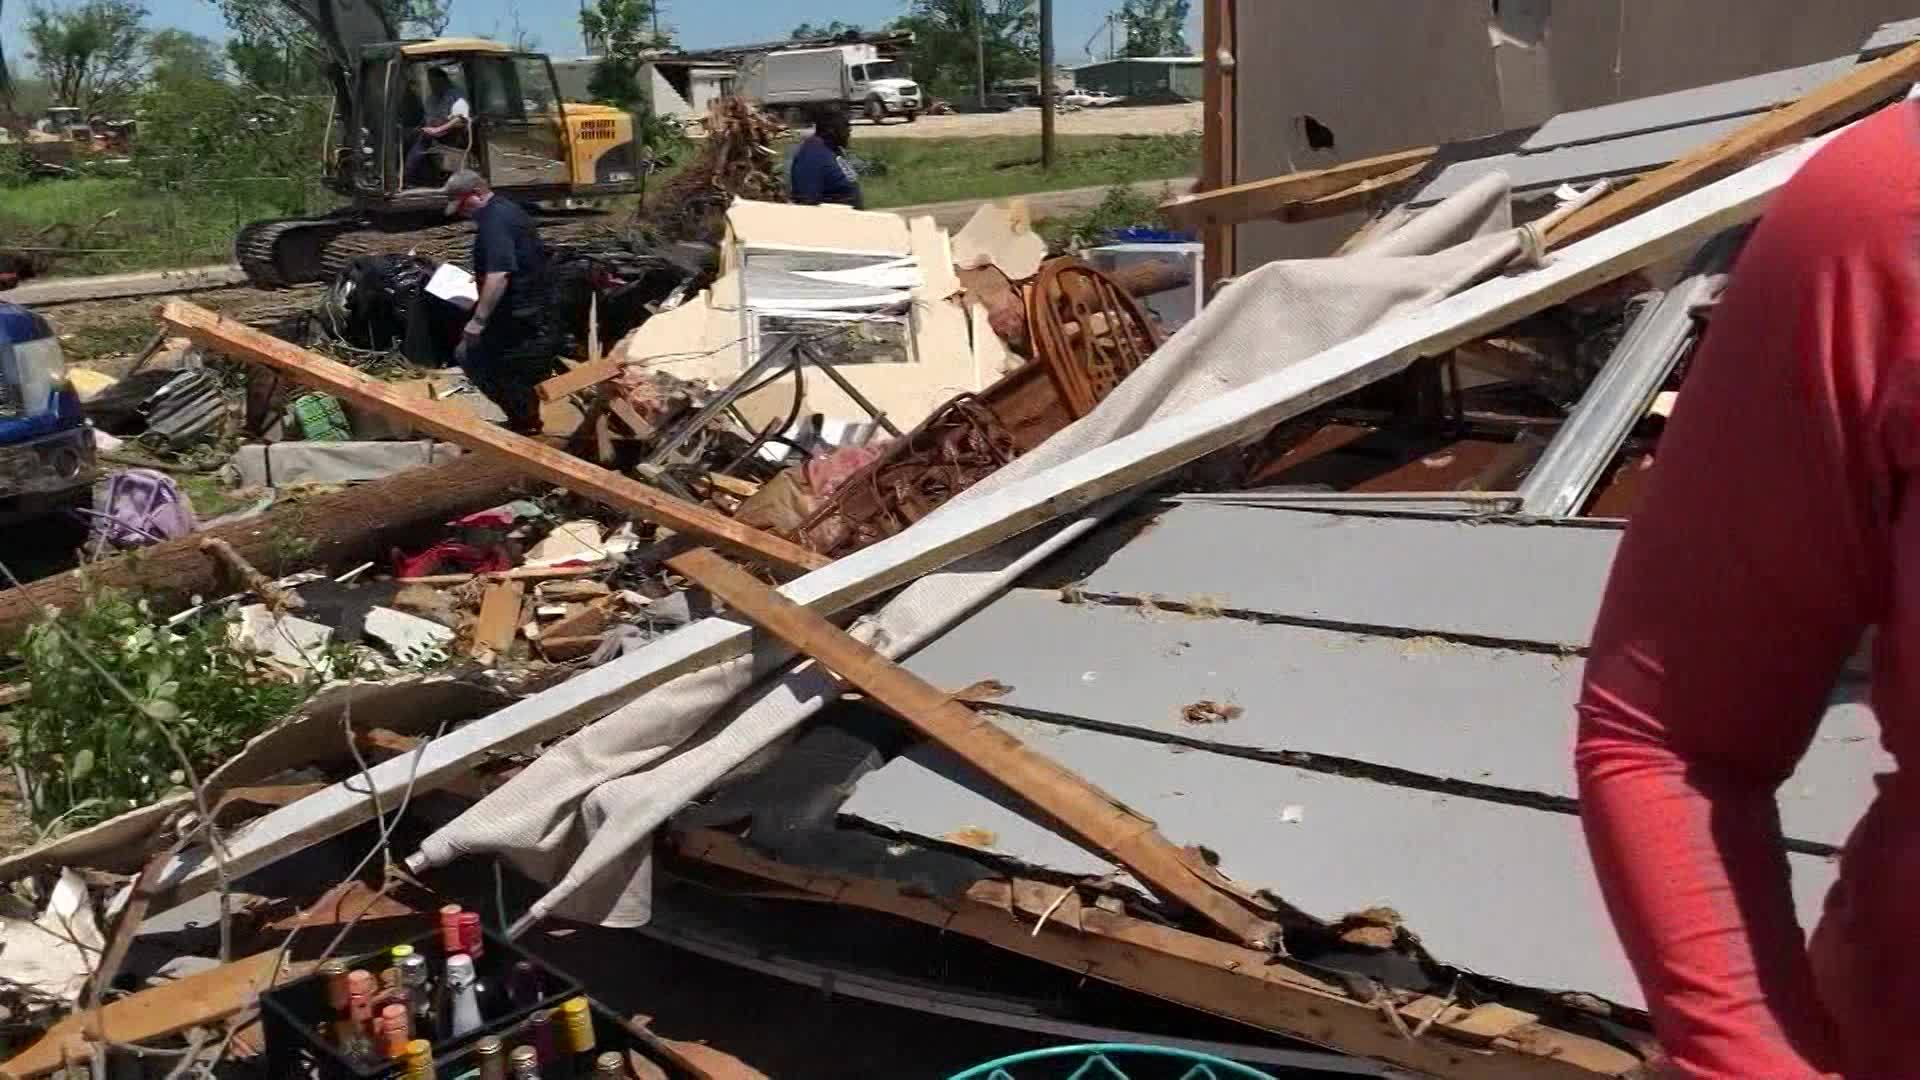 Miraculous: Wall of crosses survives Texas tornado